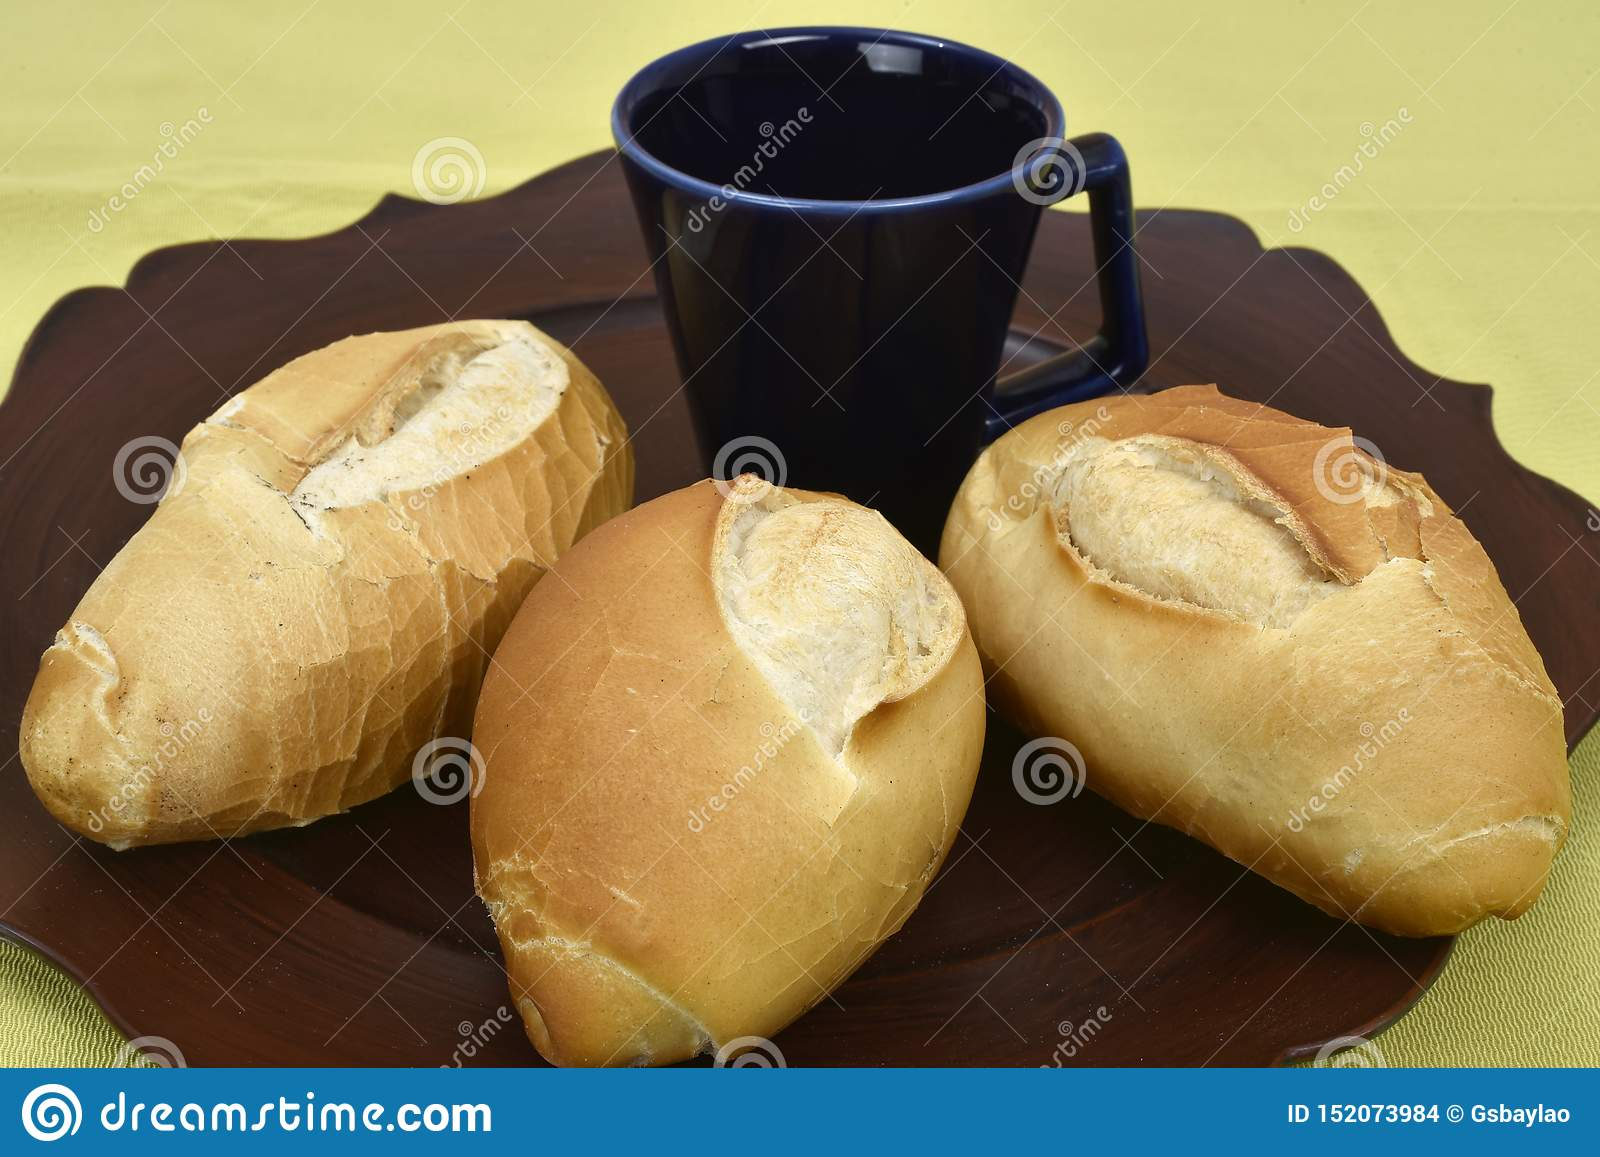 French bread on the plate with black cup in the background